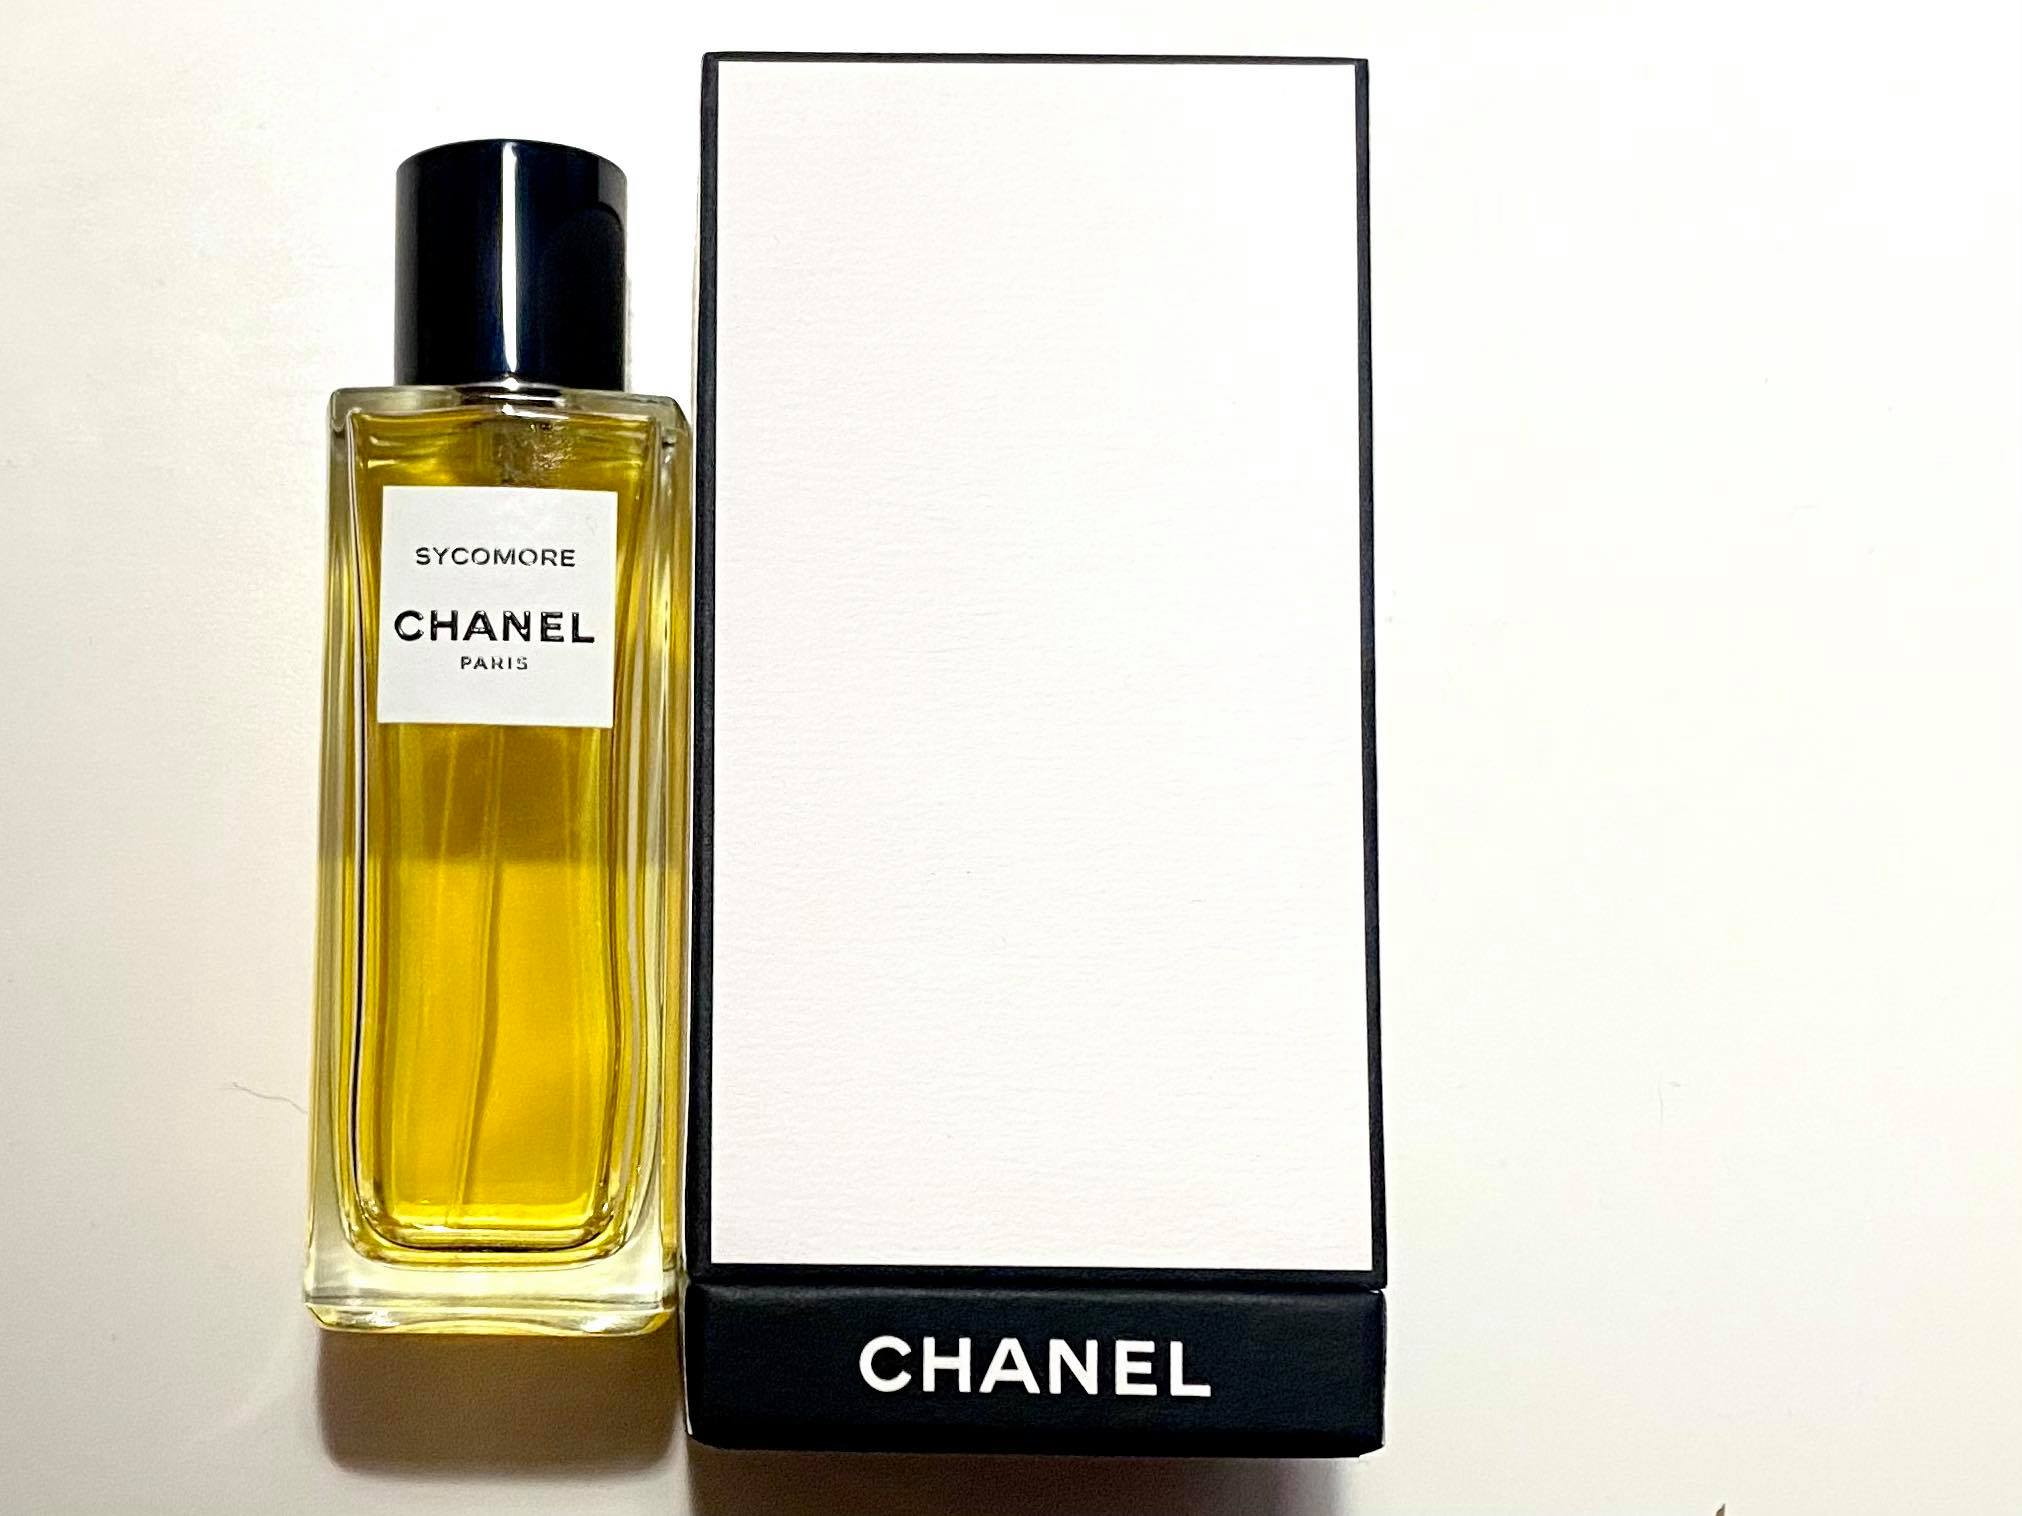 Sycamore by CHANEL